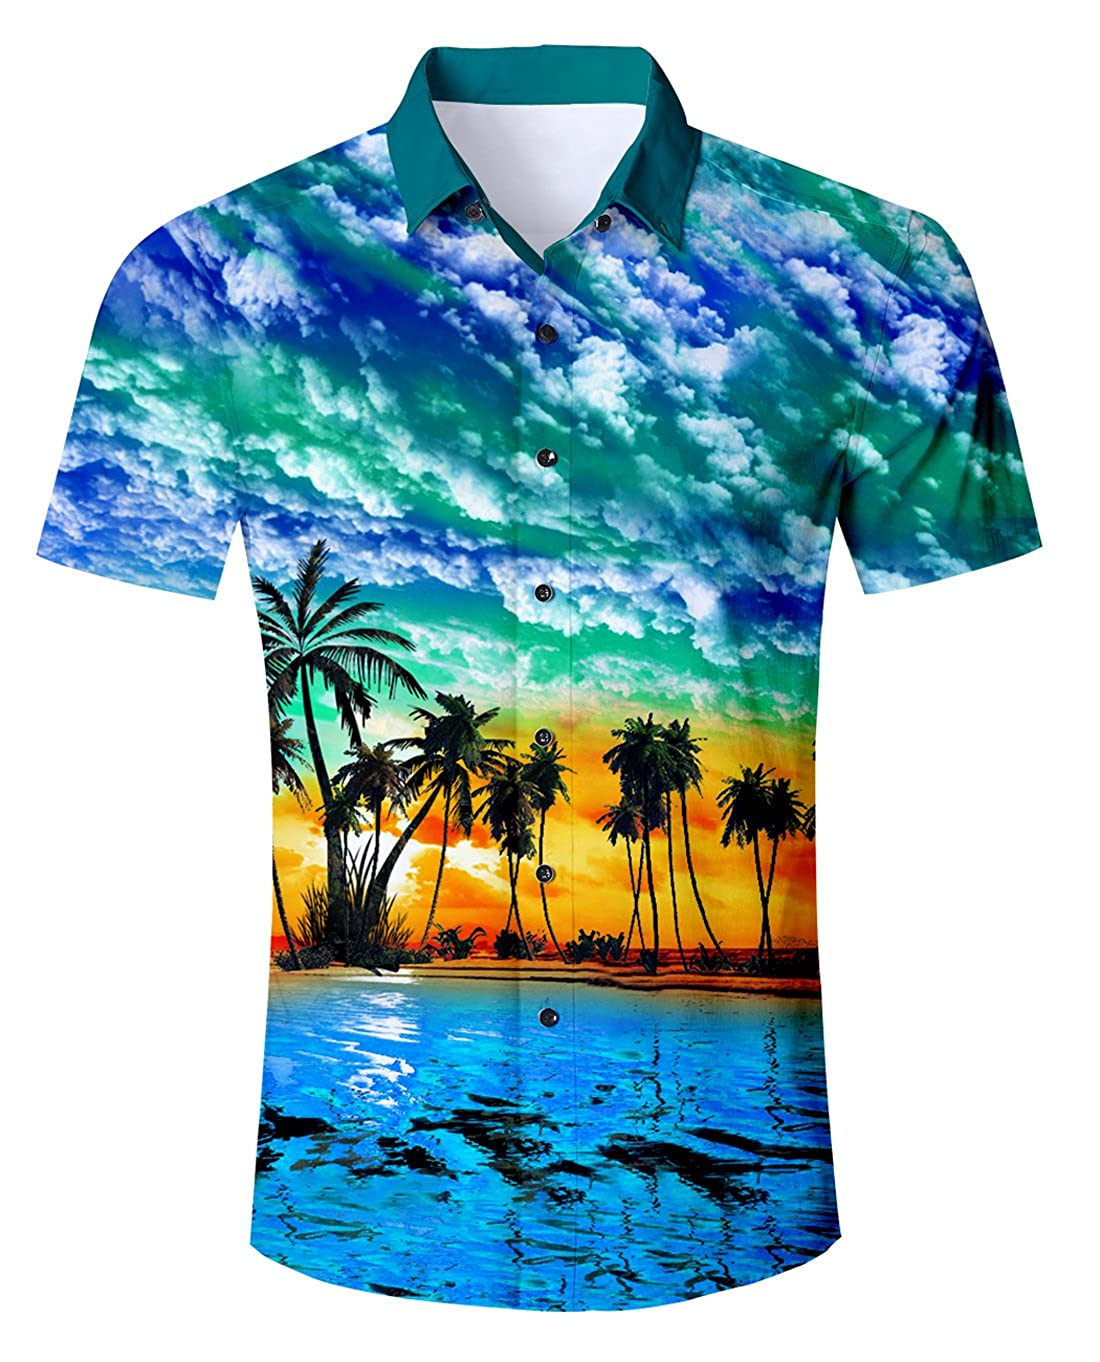 Uideazone Men Summer Button Down 3D Printed Aloha Shirt Casual Short Sleeve Tropical Beach Hawaiian Shirts